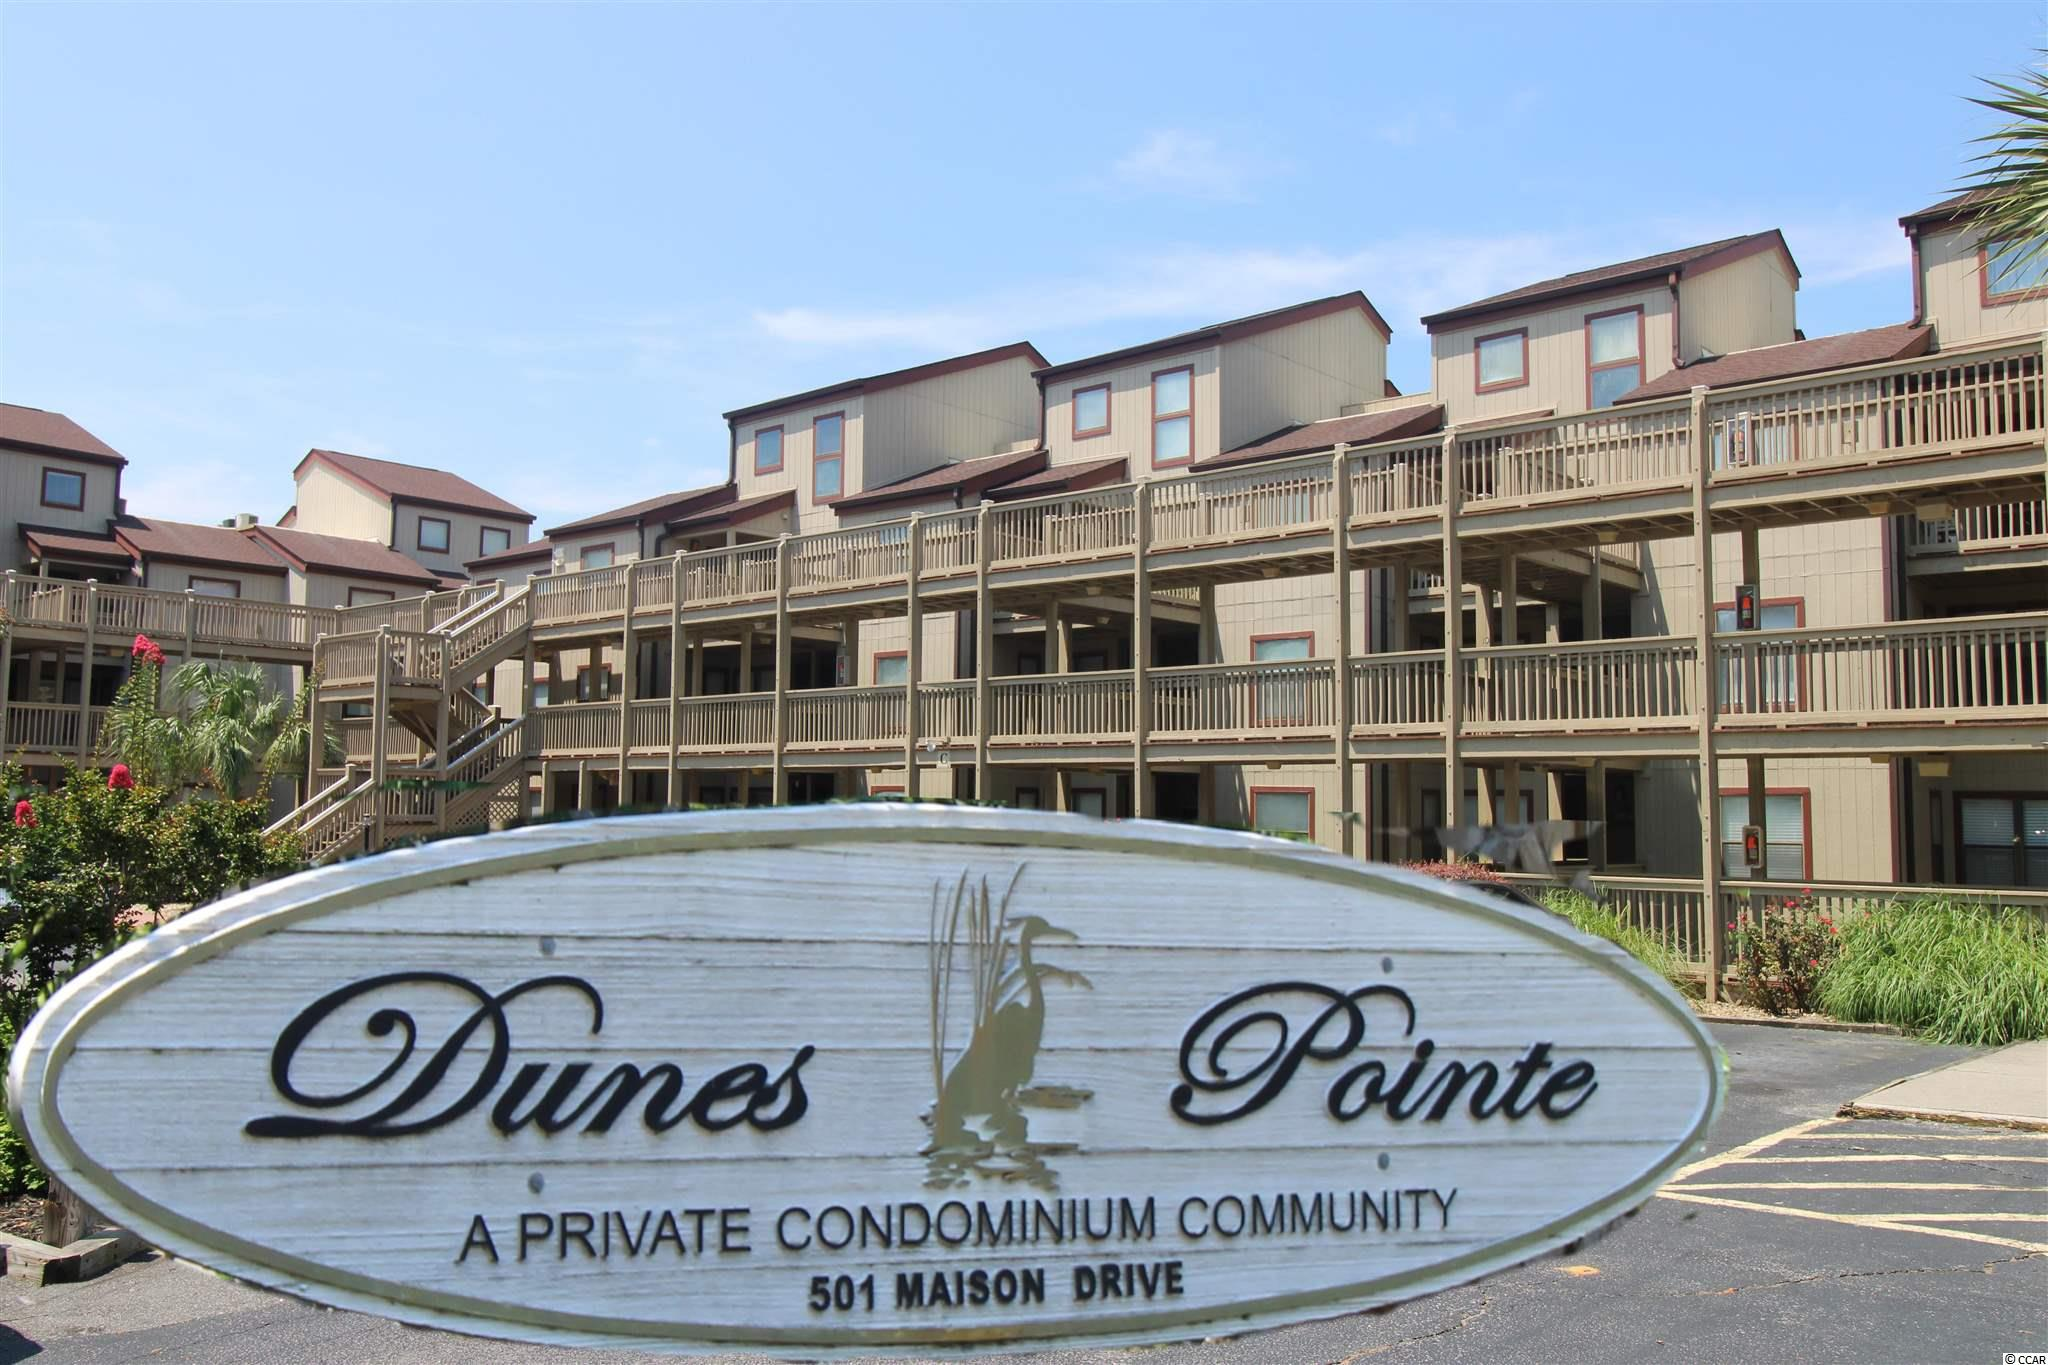 """DUNES POINTE - MYRTLE BEACH - Popular ARCADIAN SECTION near Shore Drive! 2 Bedroom-2 Full Bath-furnished 1000+ Sqft condo on 1st level!  Well maintained condo w/full size kitchen & dining area featuring a large SCREENED porch overlooking the expansive green lawn with Dunes Lake in the background. Amenities include: outdoor and indoor swimming pools, tennis courts and club house. Notables: updated bathrooms $$$, washer and dryer """"in unit"""" included, 900 yards walk/cart to the beach, 2 miles from Hwy 22 and near many attractions including: Barefoot Landing, Tanger Outlets and Apache Pier! Turn Key for investment or personal use."""